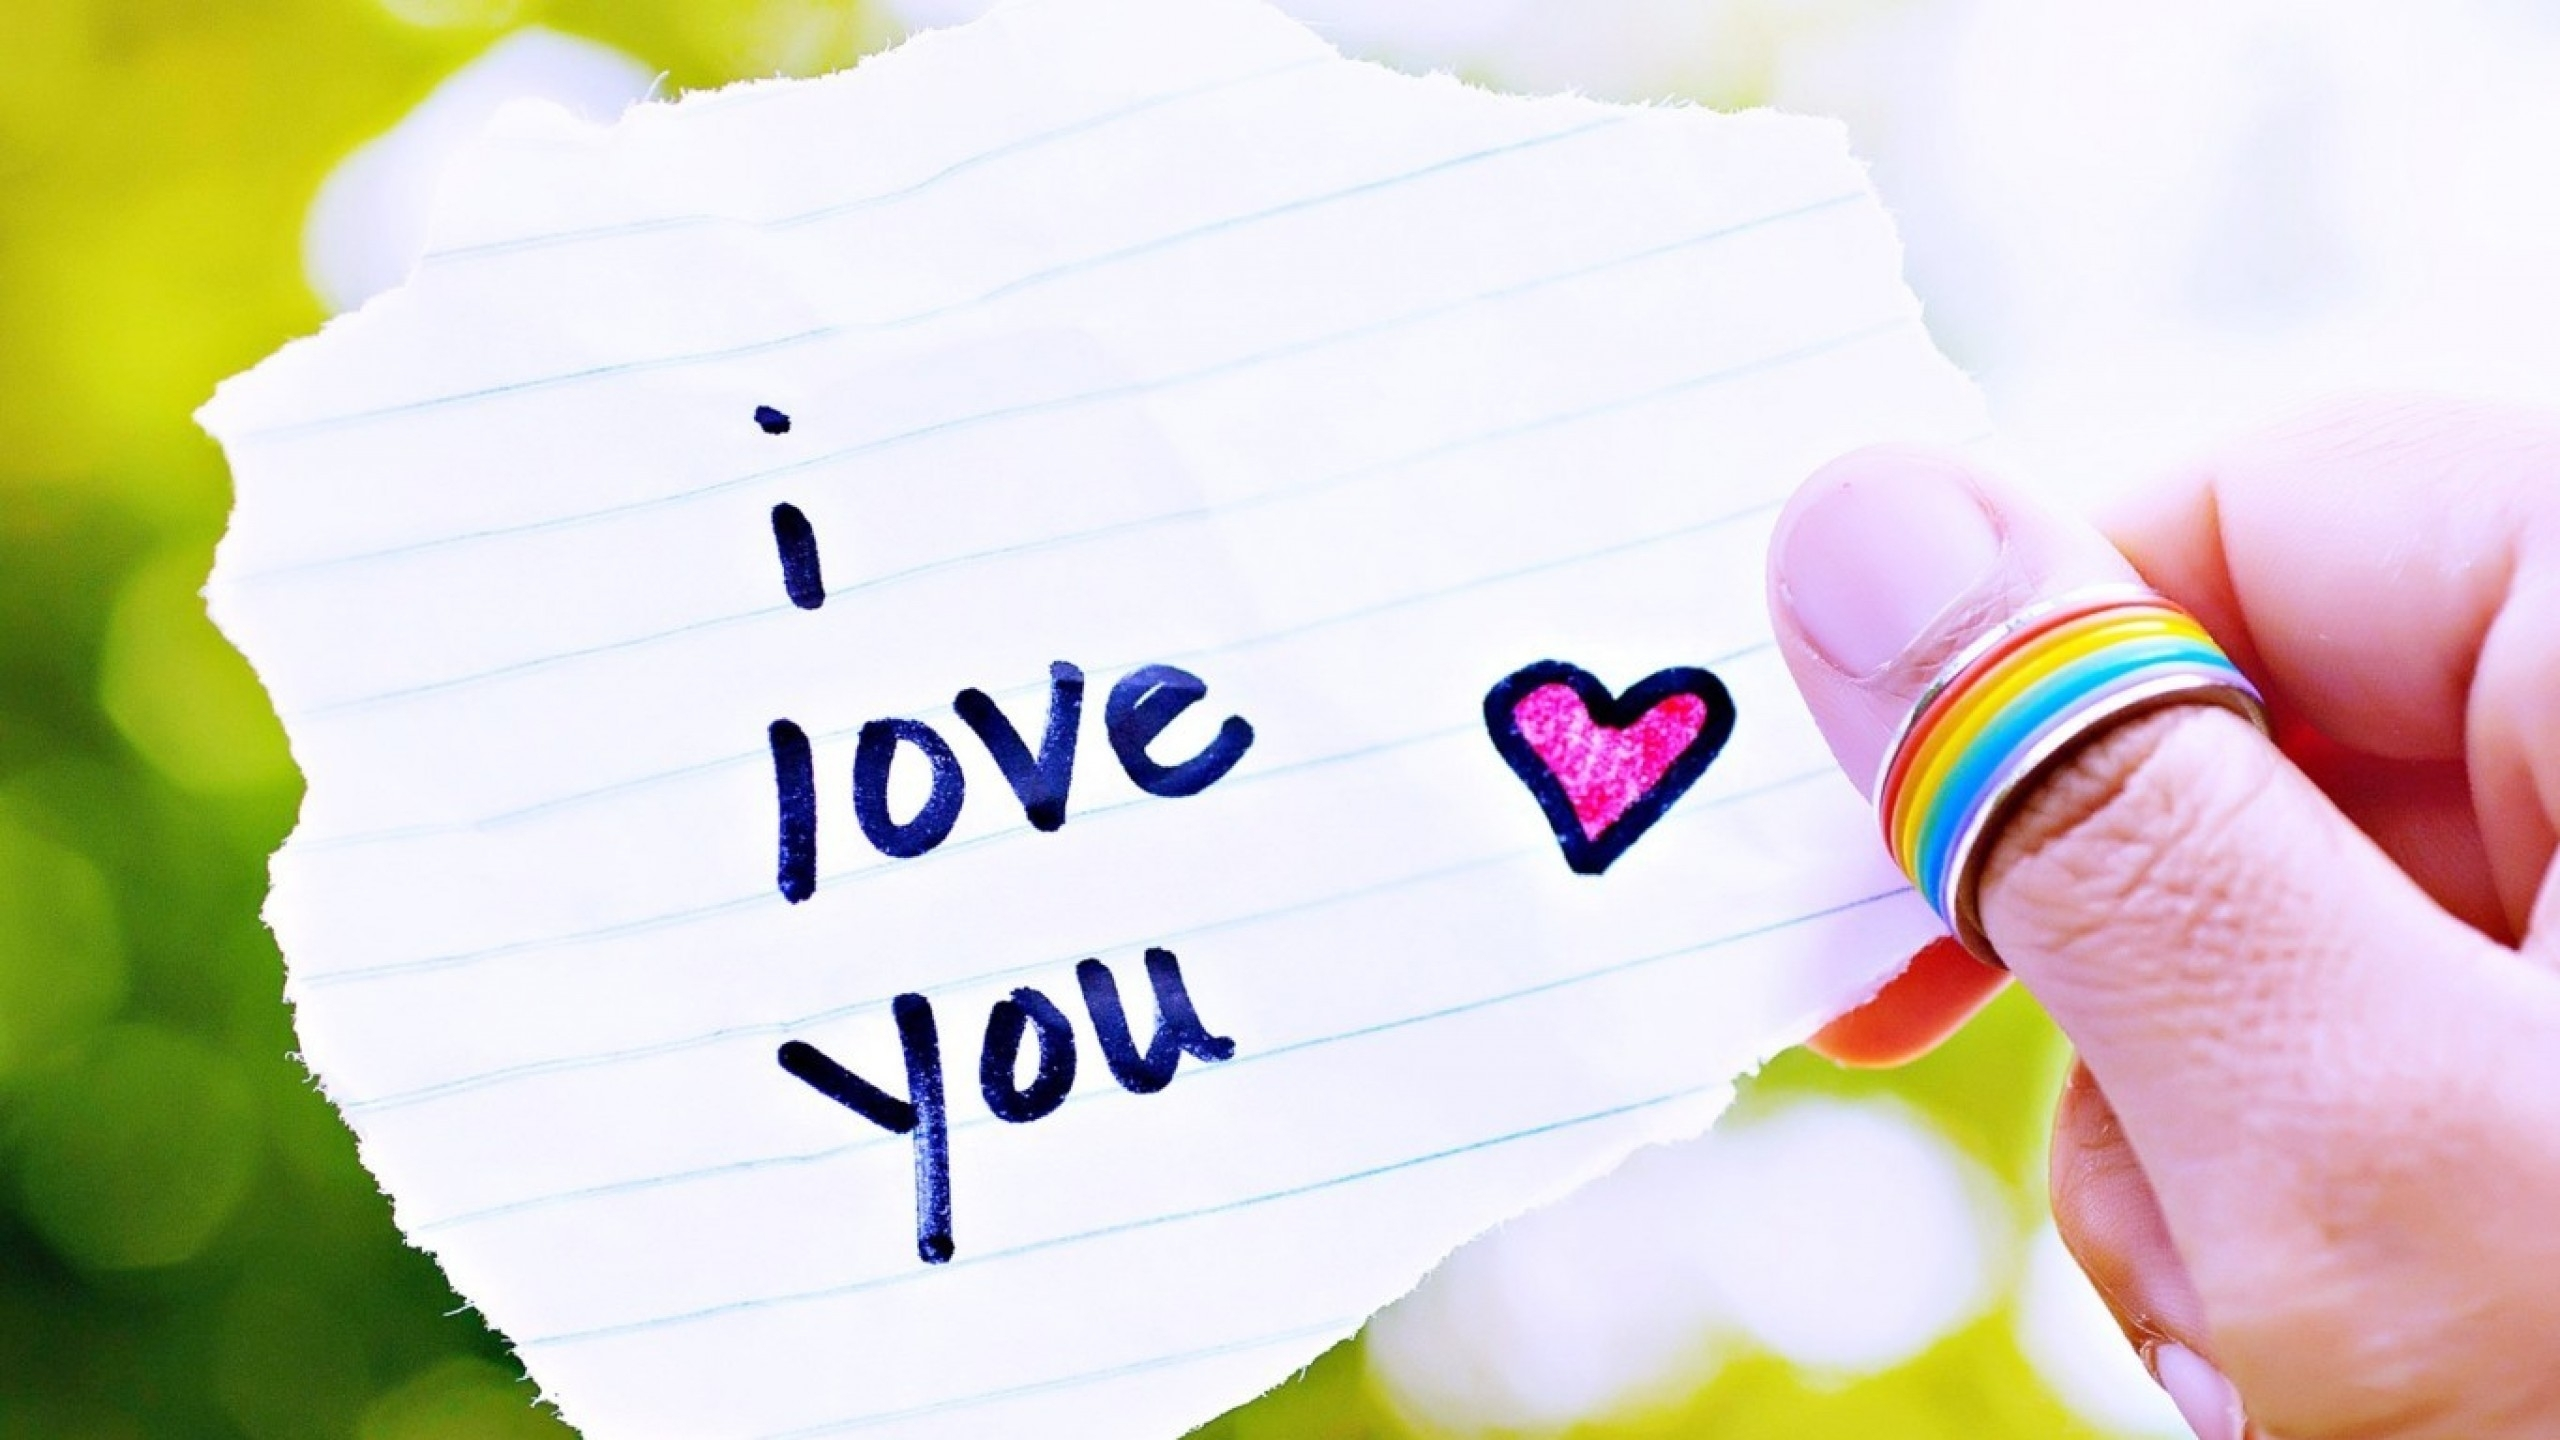 sweet i love you images hd free download | i love you images